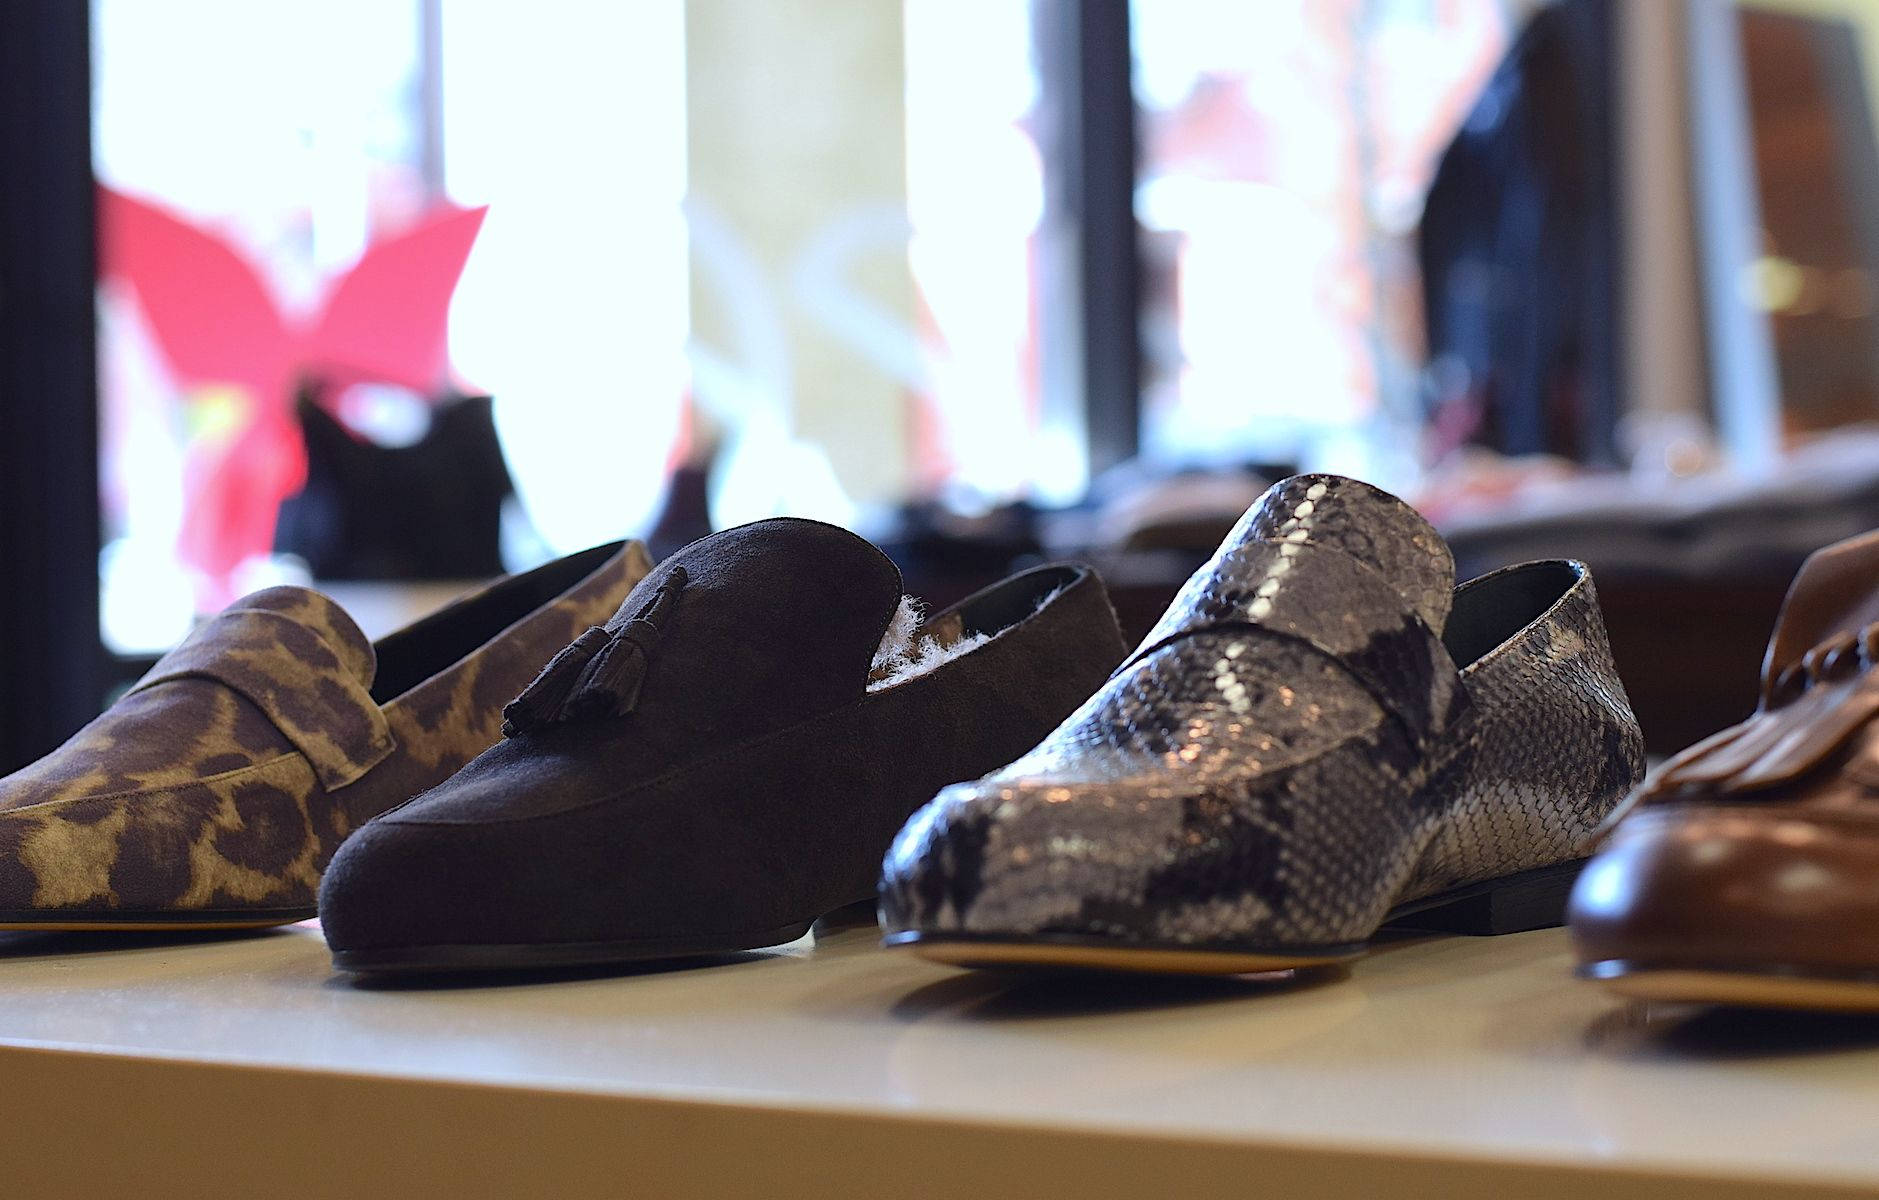 Panara Shoes At Leelee Shoes Sport Shoes Tap Shoes